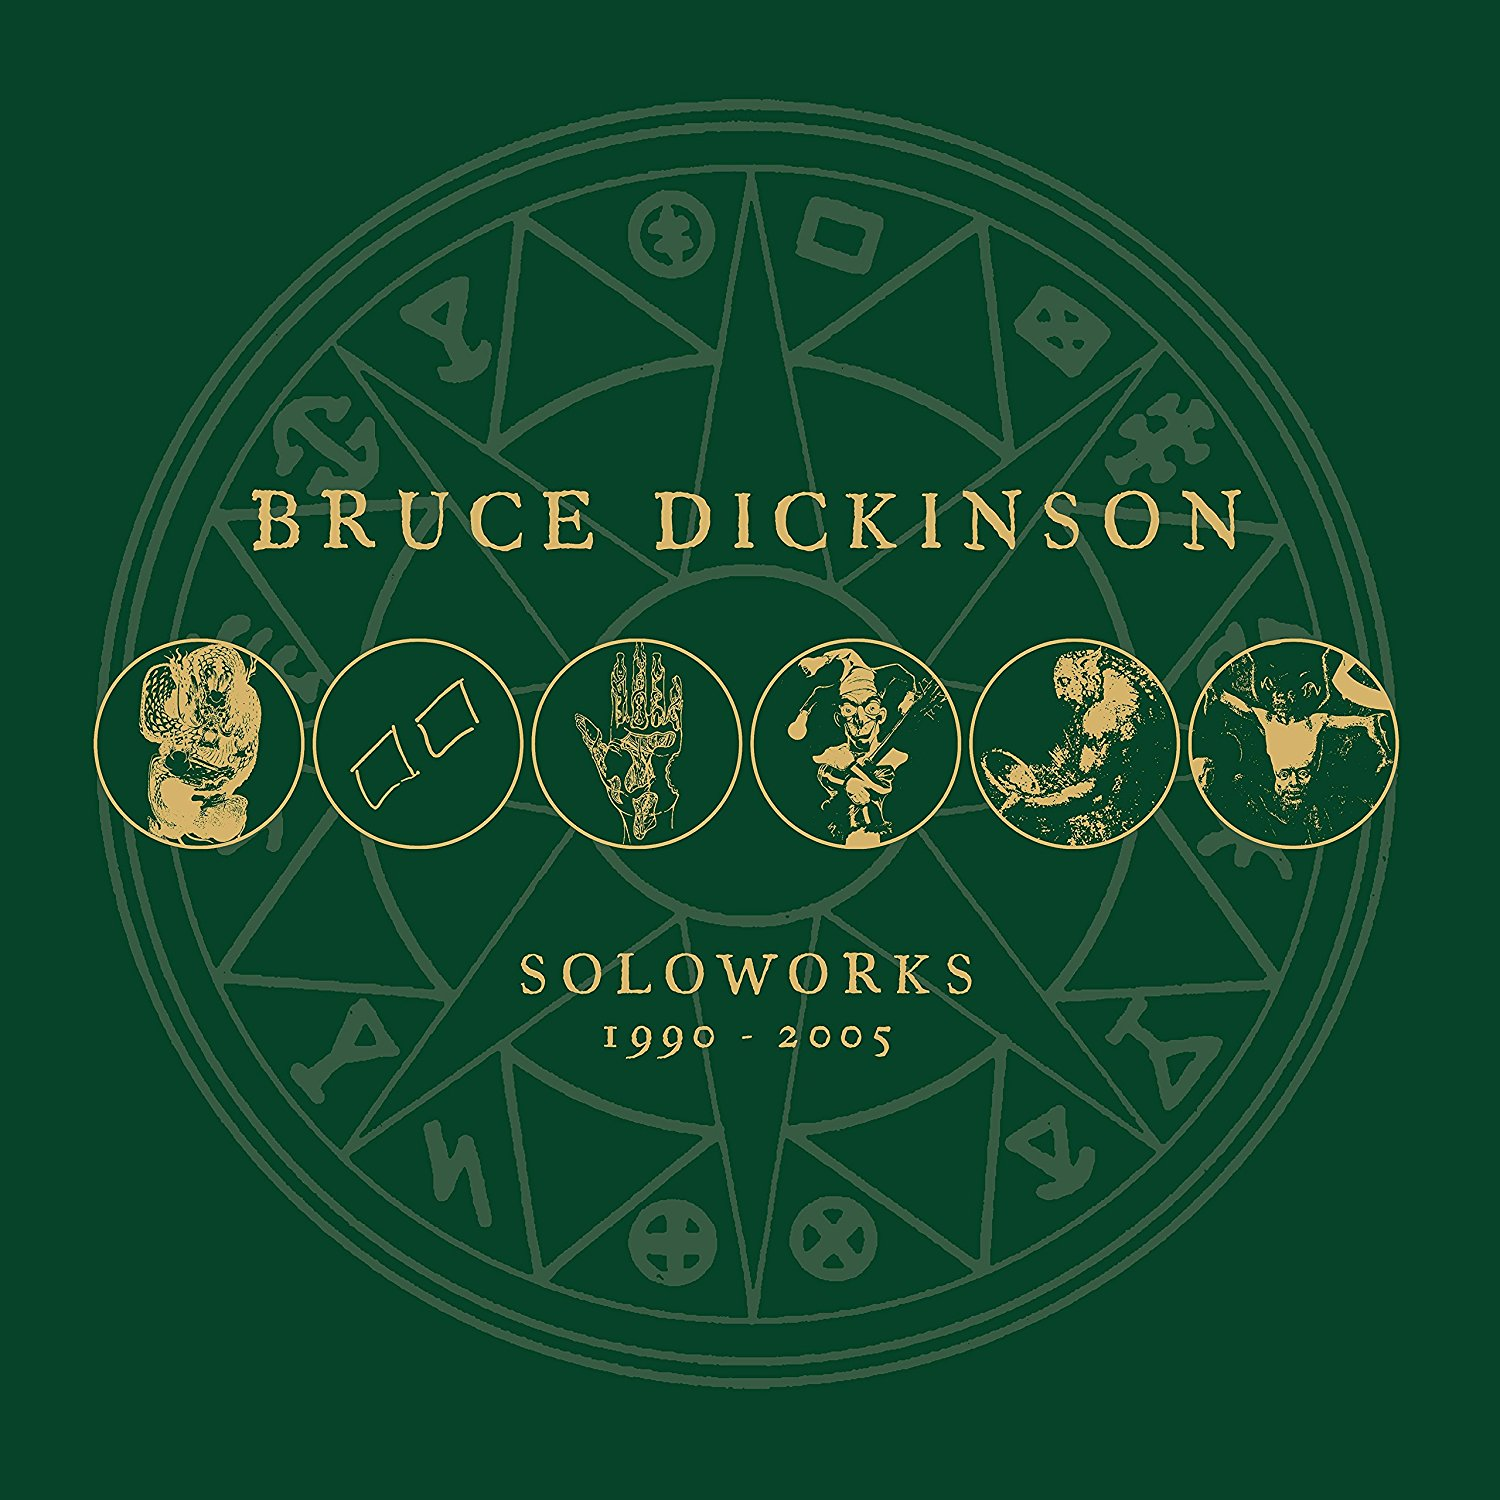 Bruce Dickinson - Bruce Dickinson - Soloworks [LP Box Set]